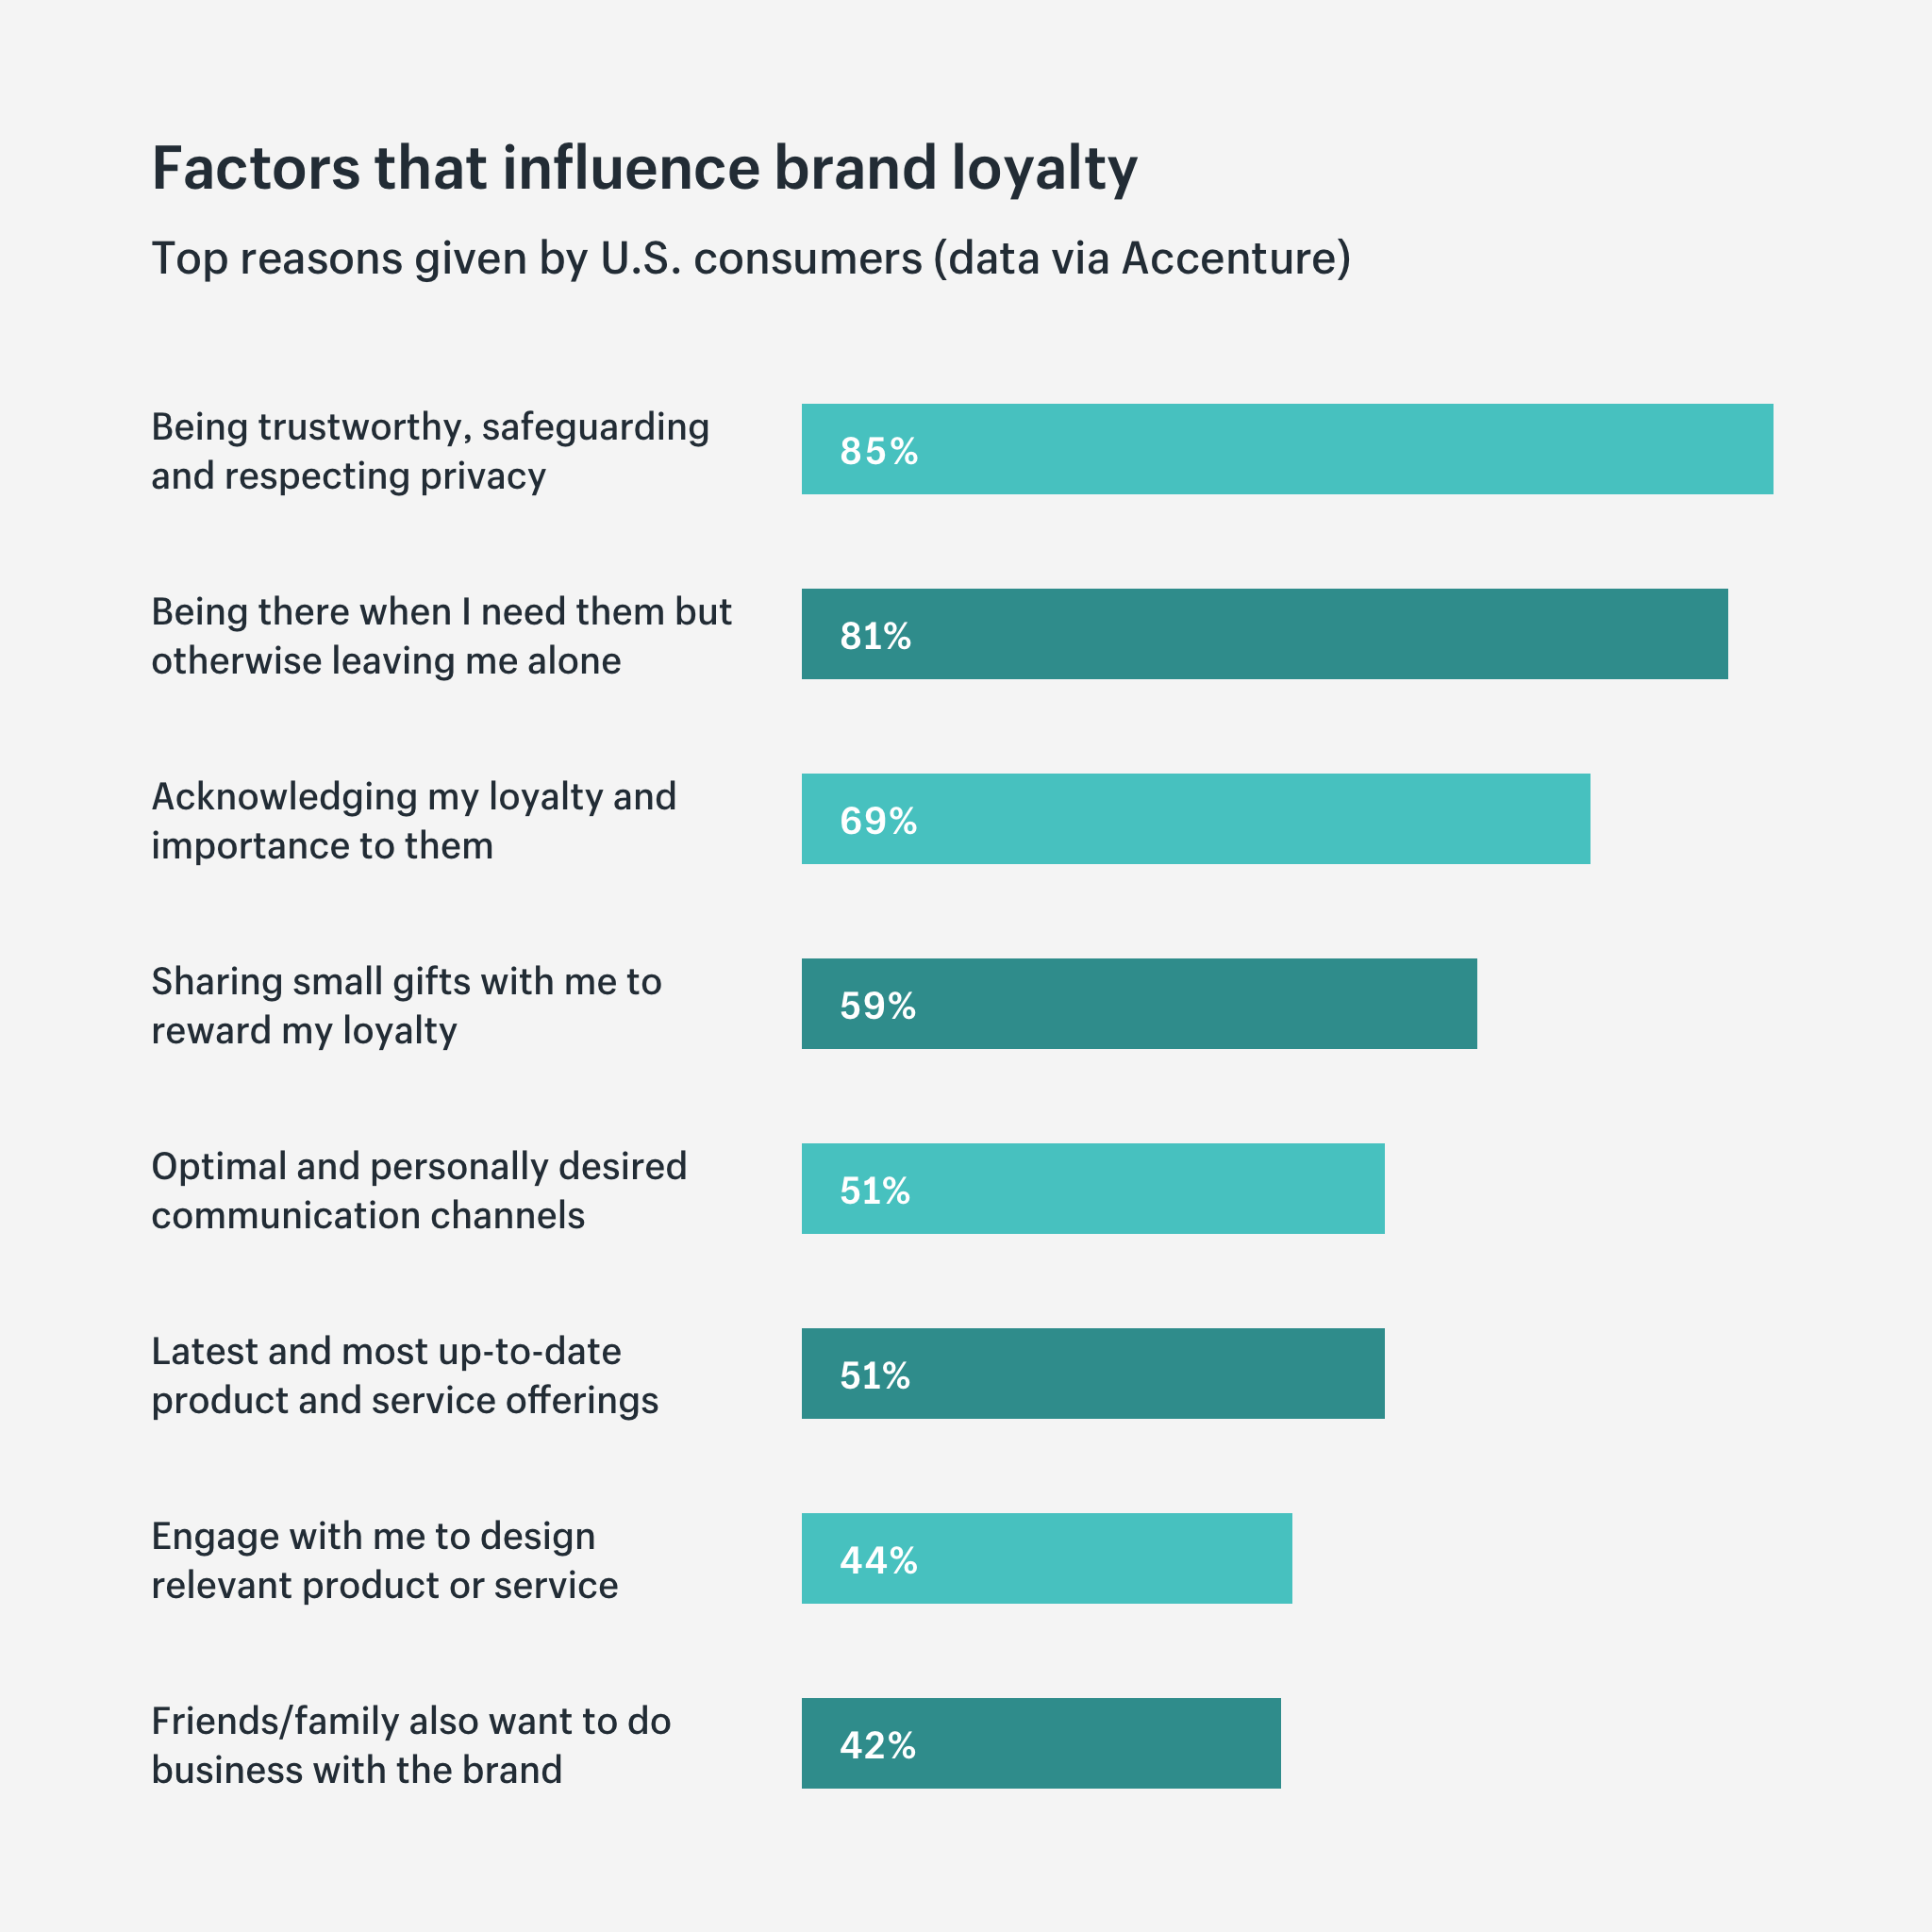 Factors that influence brand loyalty